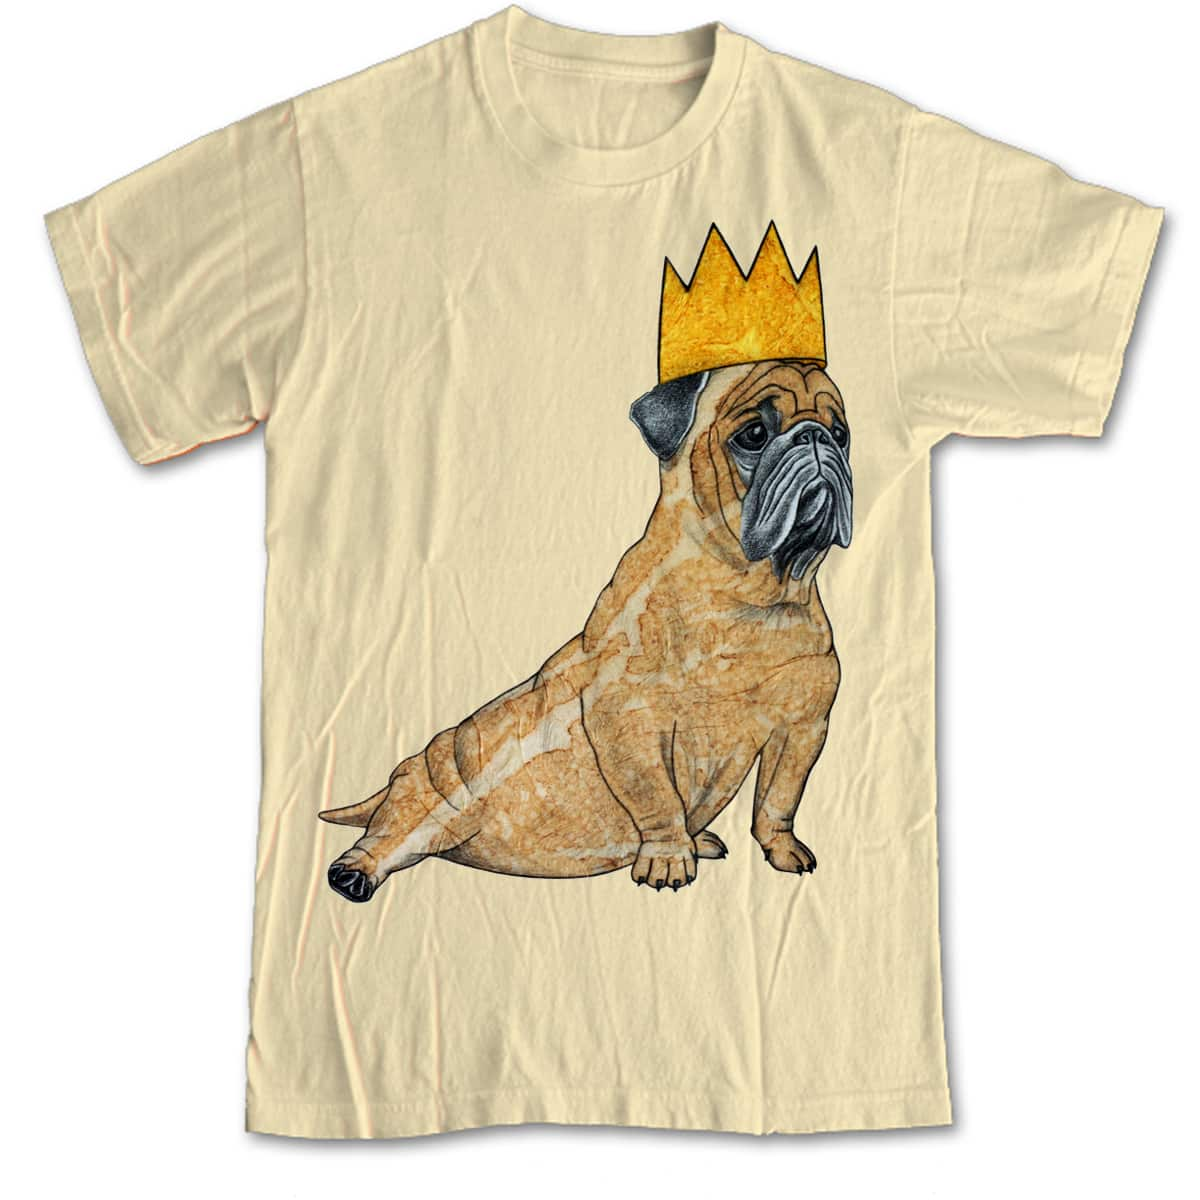 King Pug by NeatShirts on Threadless